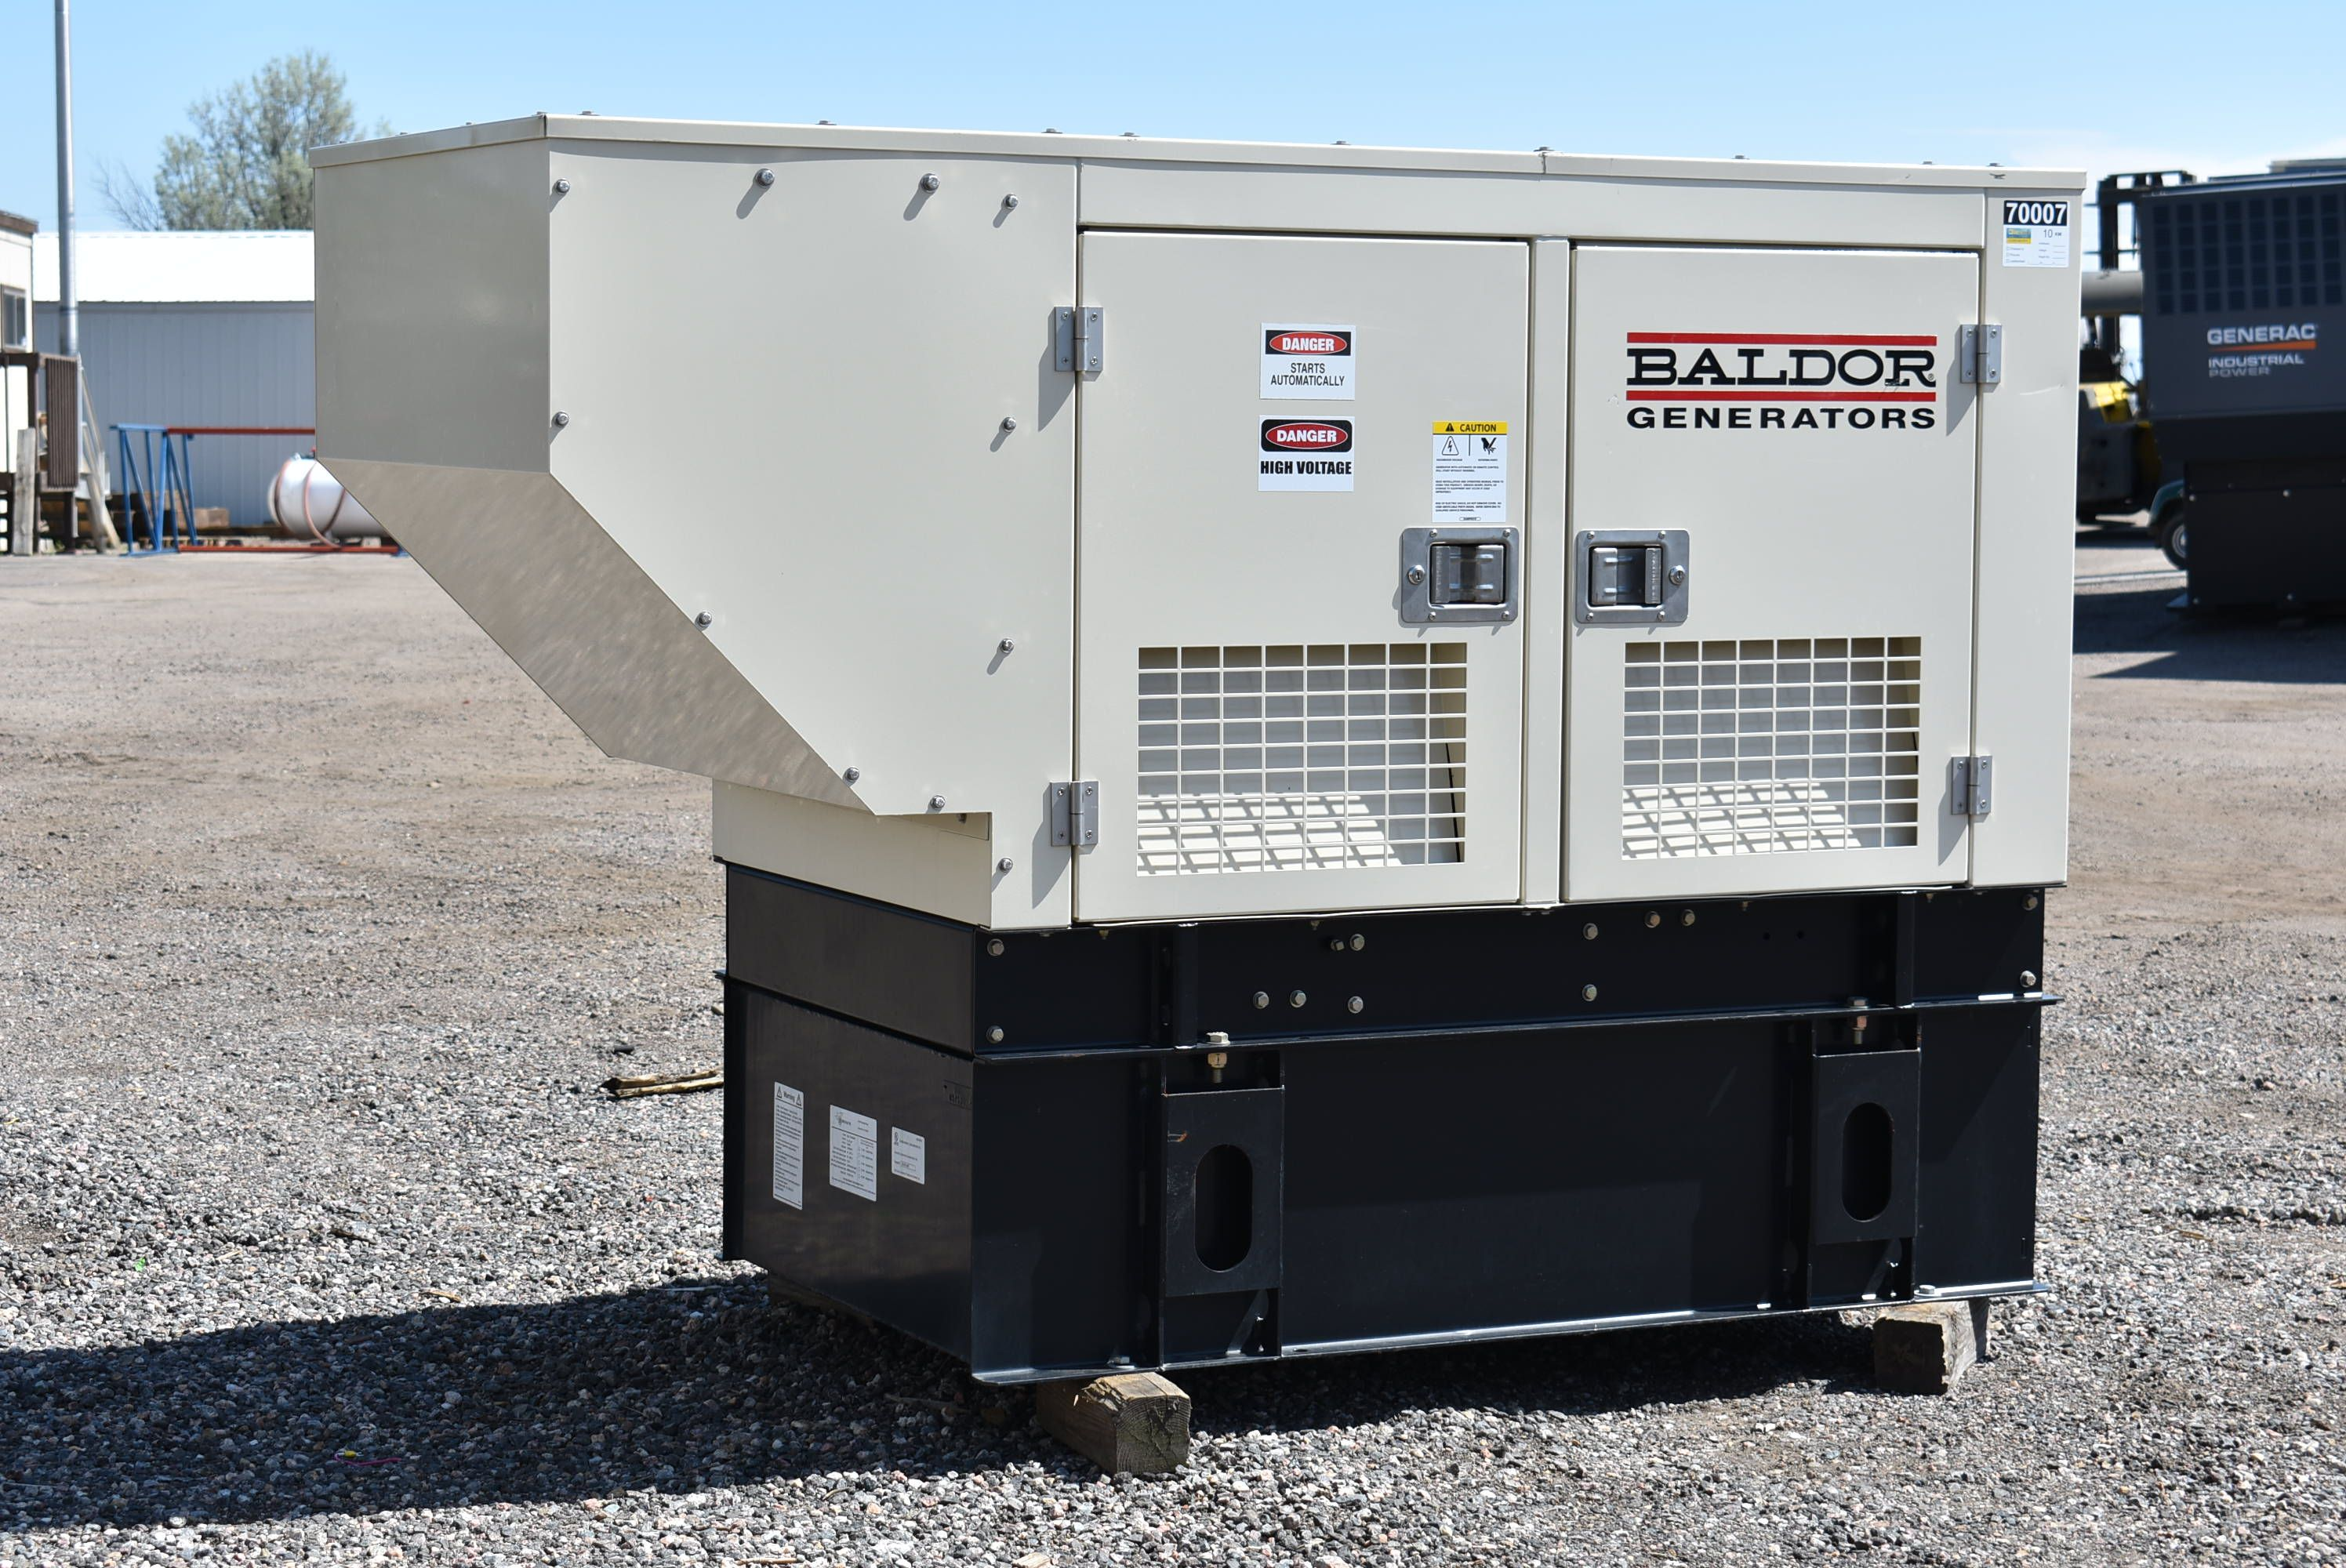 For Sale Baldor 10 Kw Diesel Generator Set Unit 70007 Model Idlc10 3mu Year 2011 41 8 Hours Run 240 Volt Diesel Generators Generation Natural Gas Generator